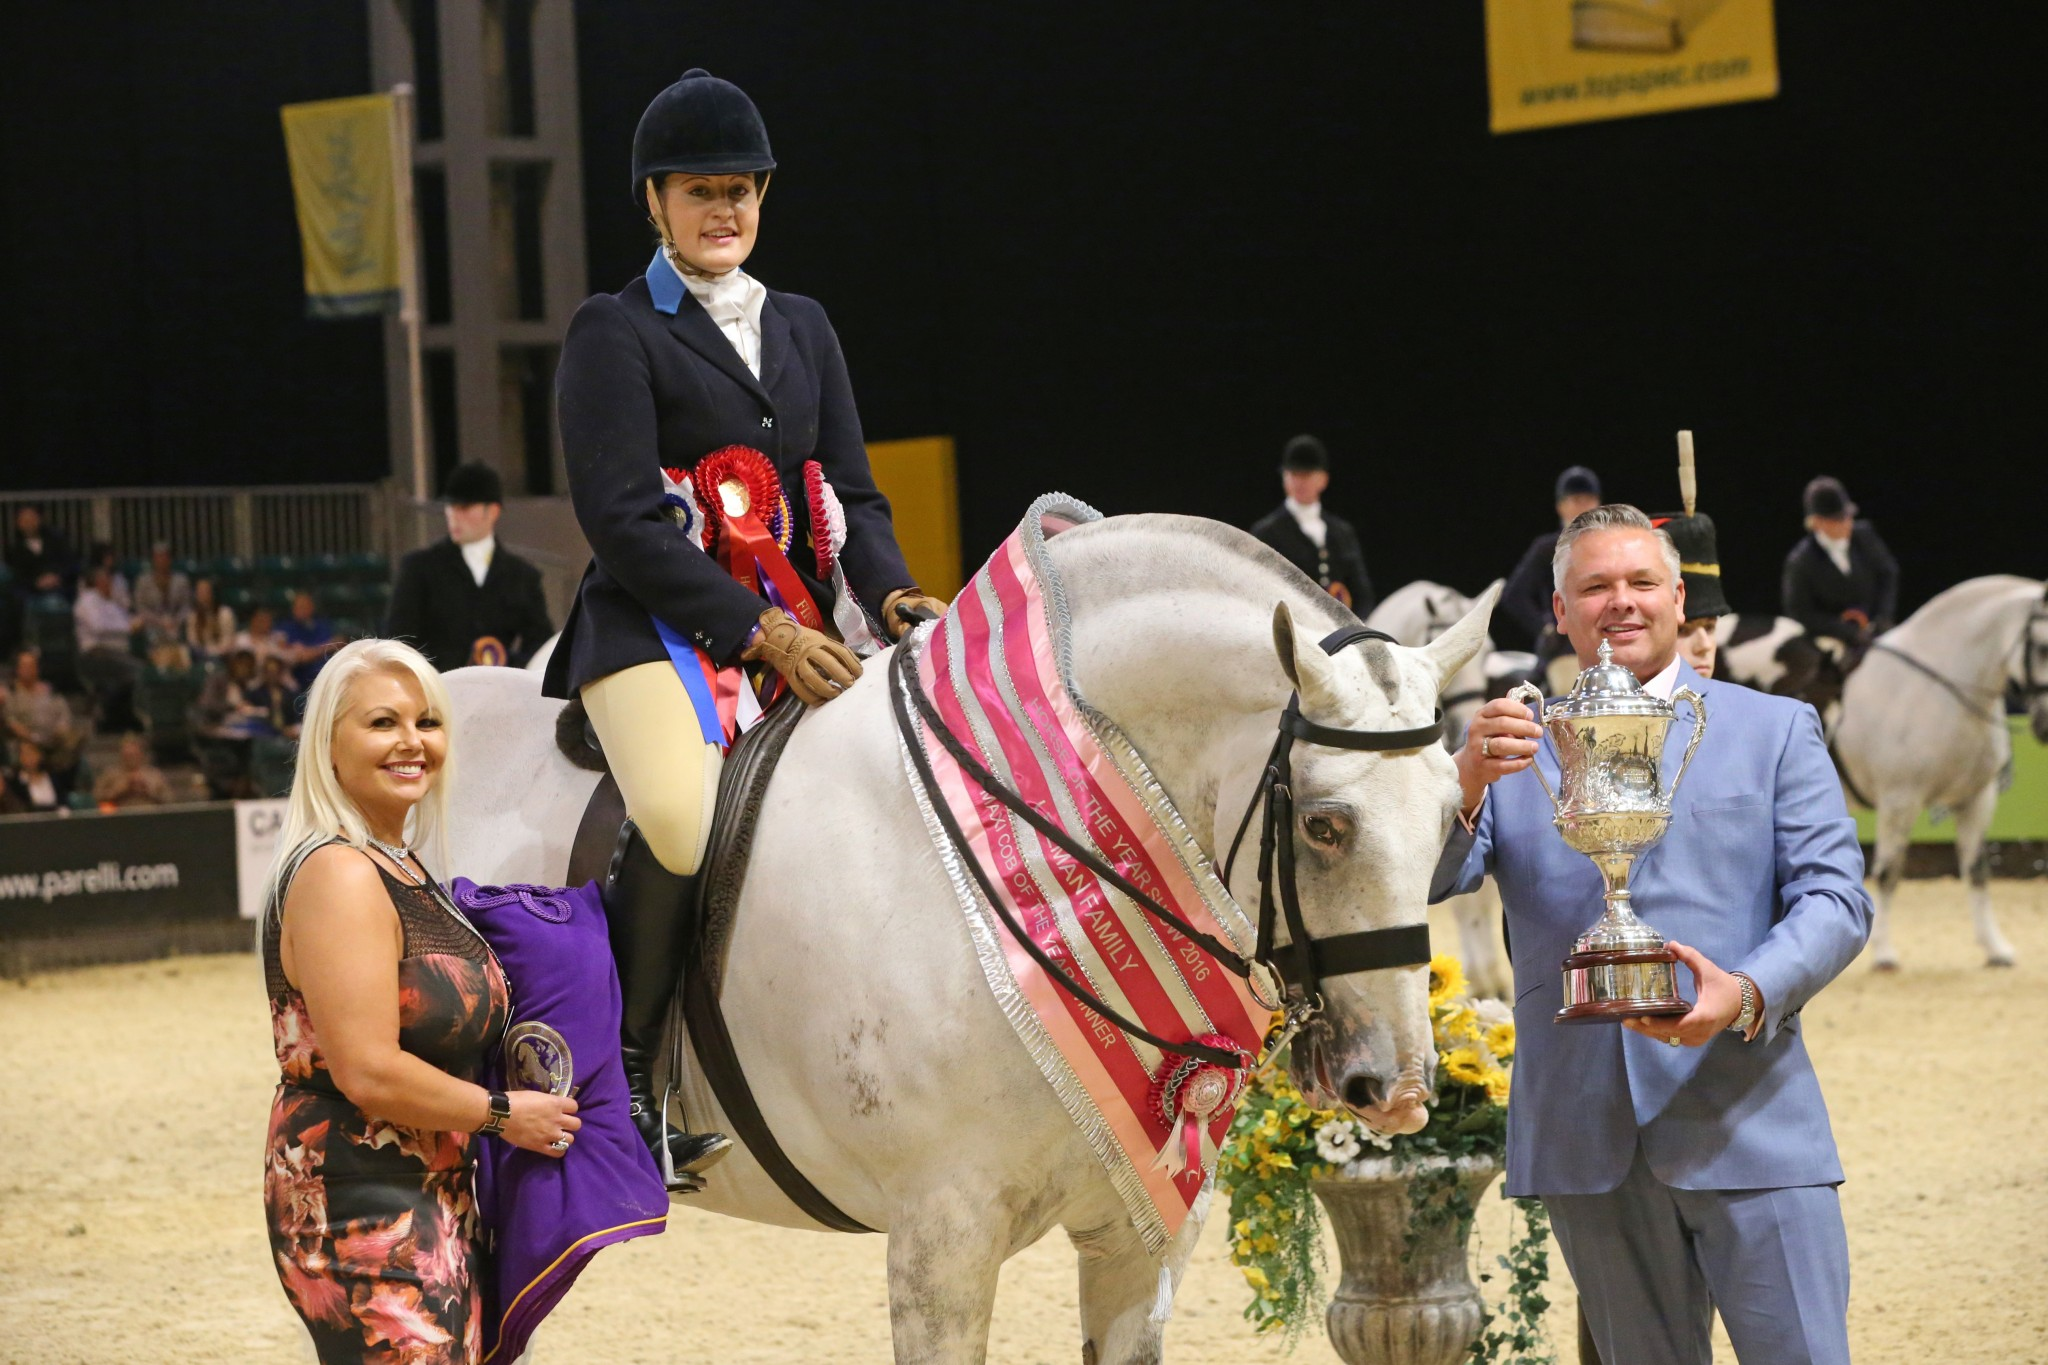 The Leeman Family Maxi Cob of the Year Championship - Colebourne is third to be crowned The Leeman Family Maxi Cob of the Year in six year history